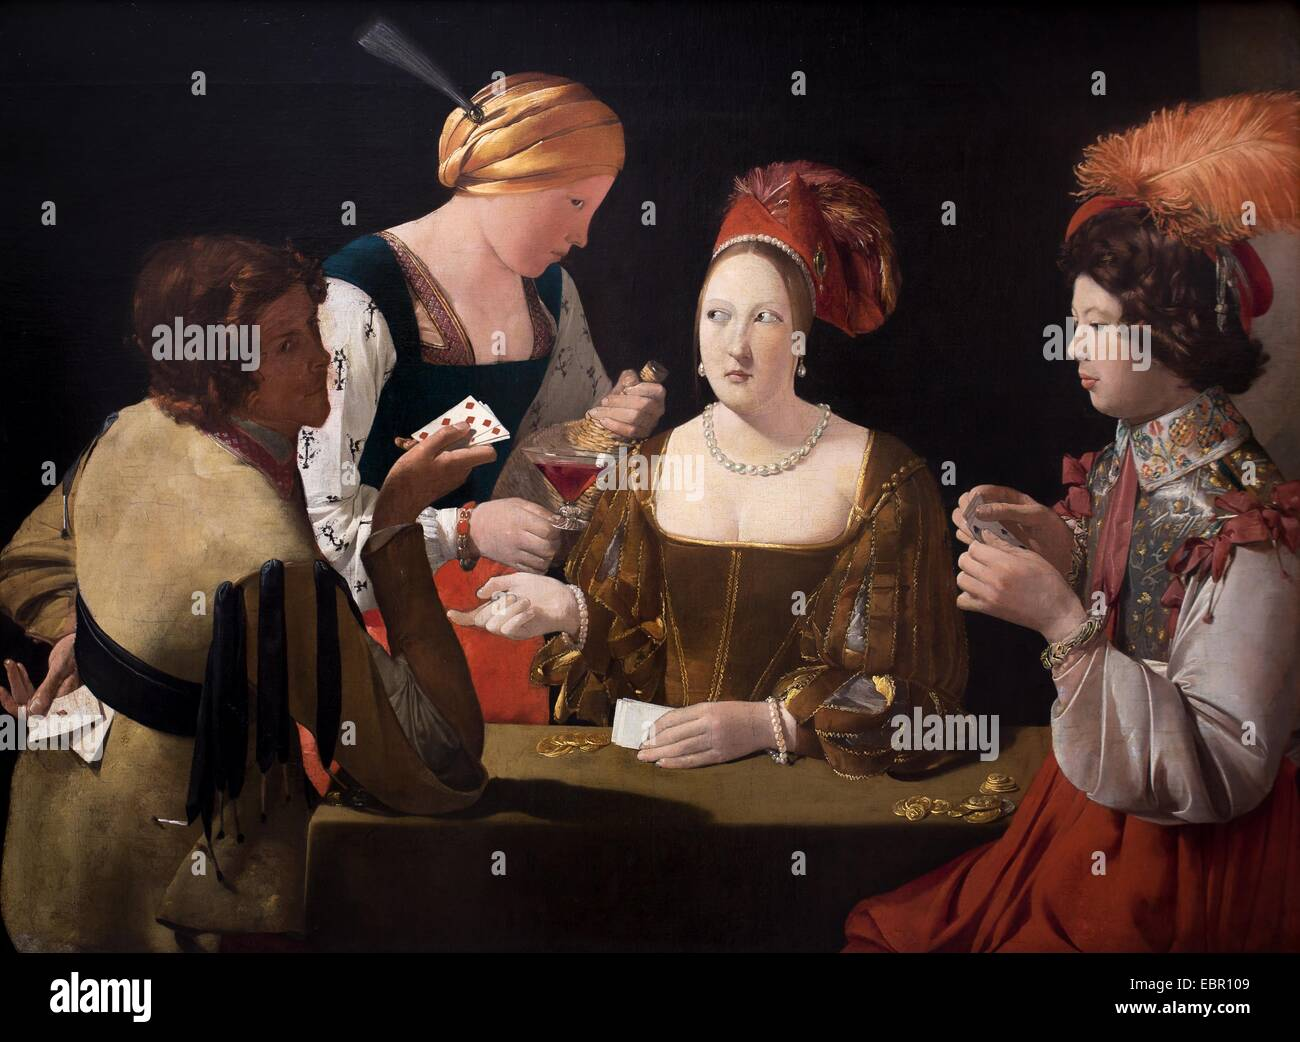 ActiveMuseum_0001626.jpg / The Cheat with the Ace of Diamonds, circa 1640 - Georges de La Tour Oil on canvas 25/09/2013 - Stock Image